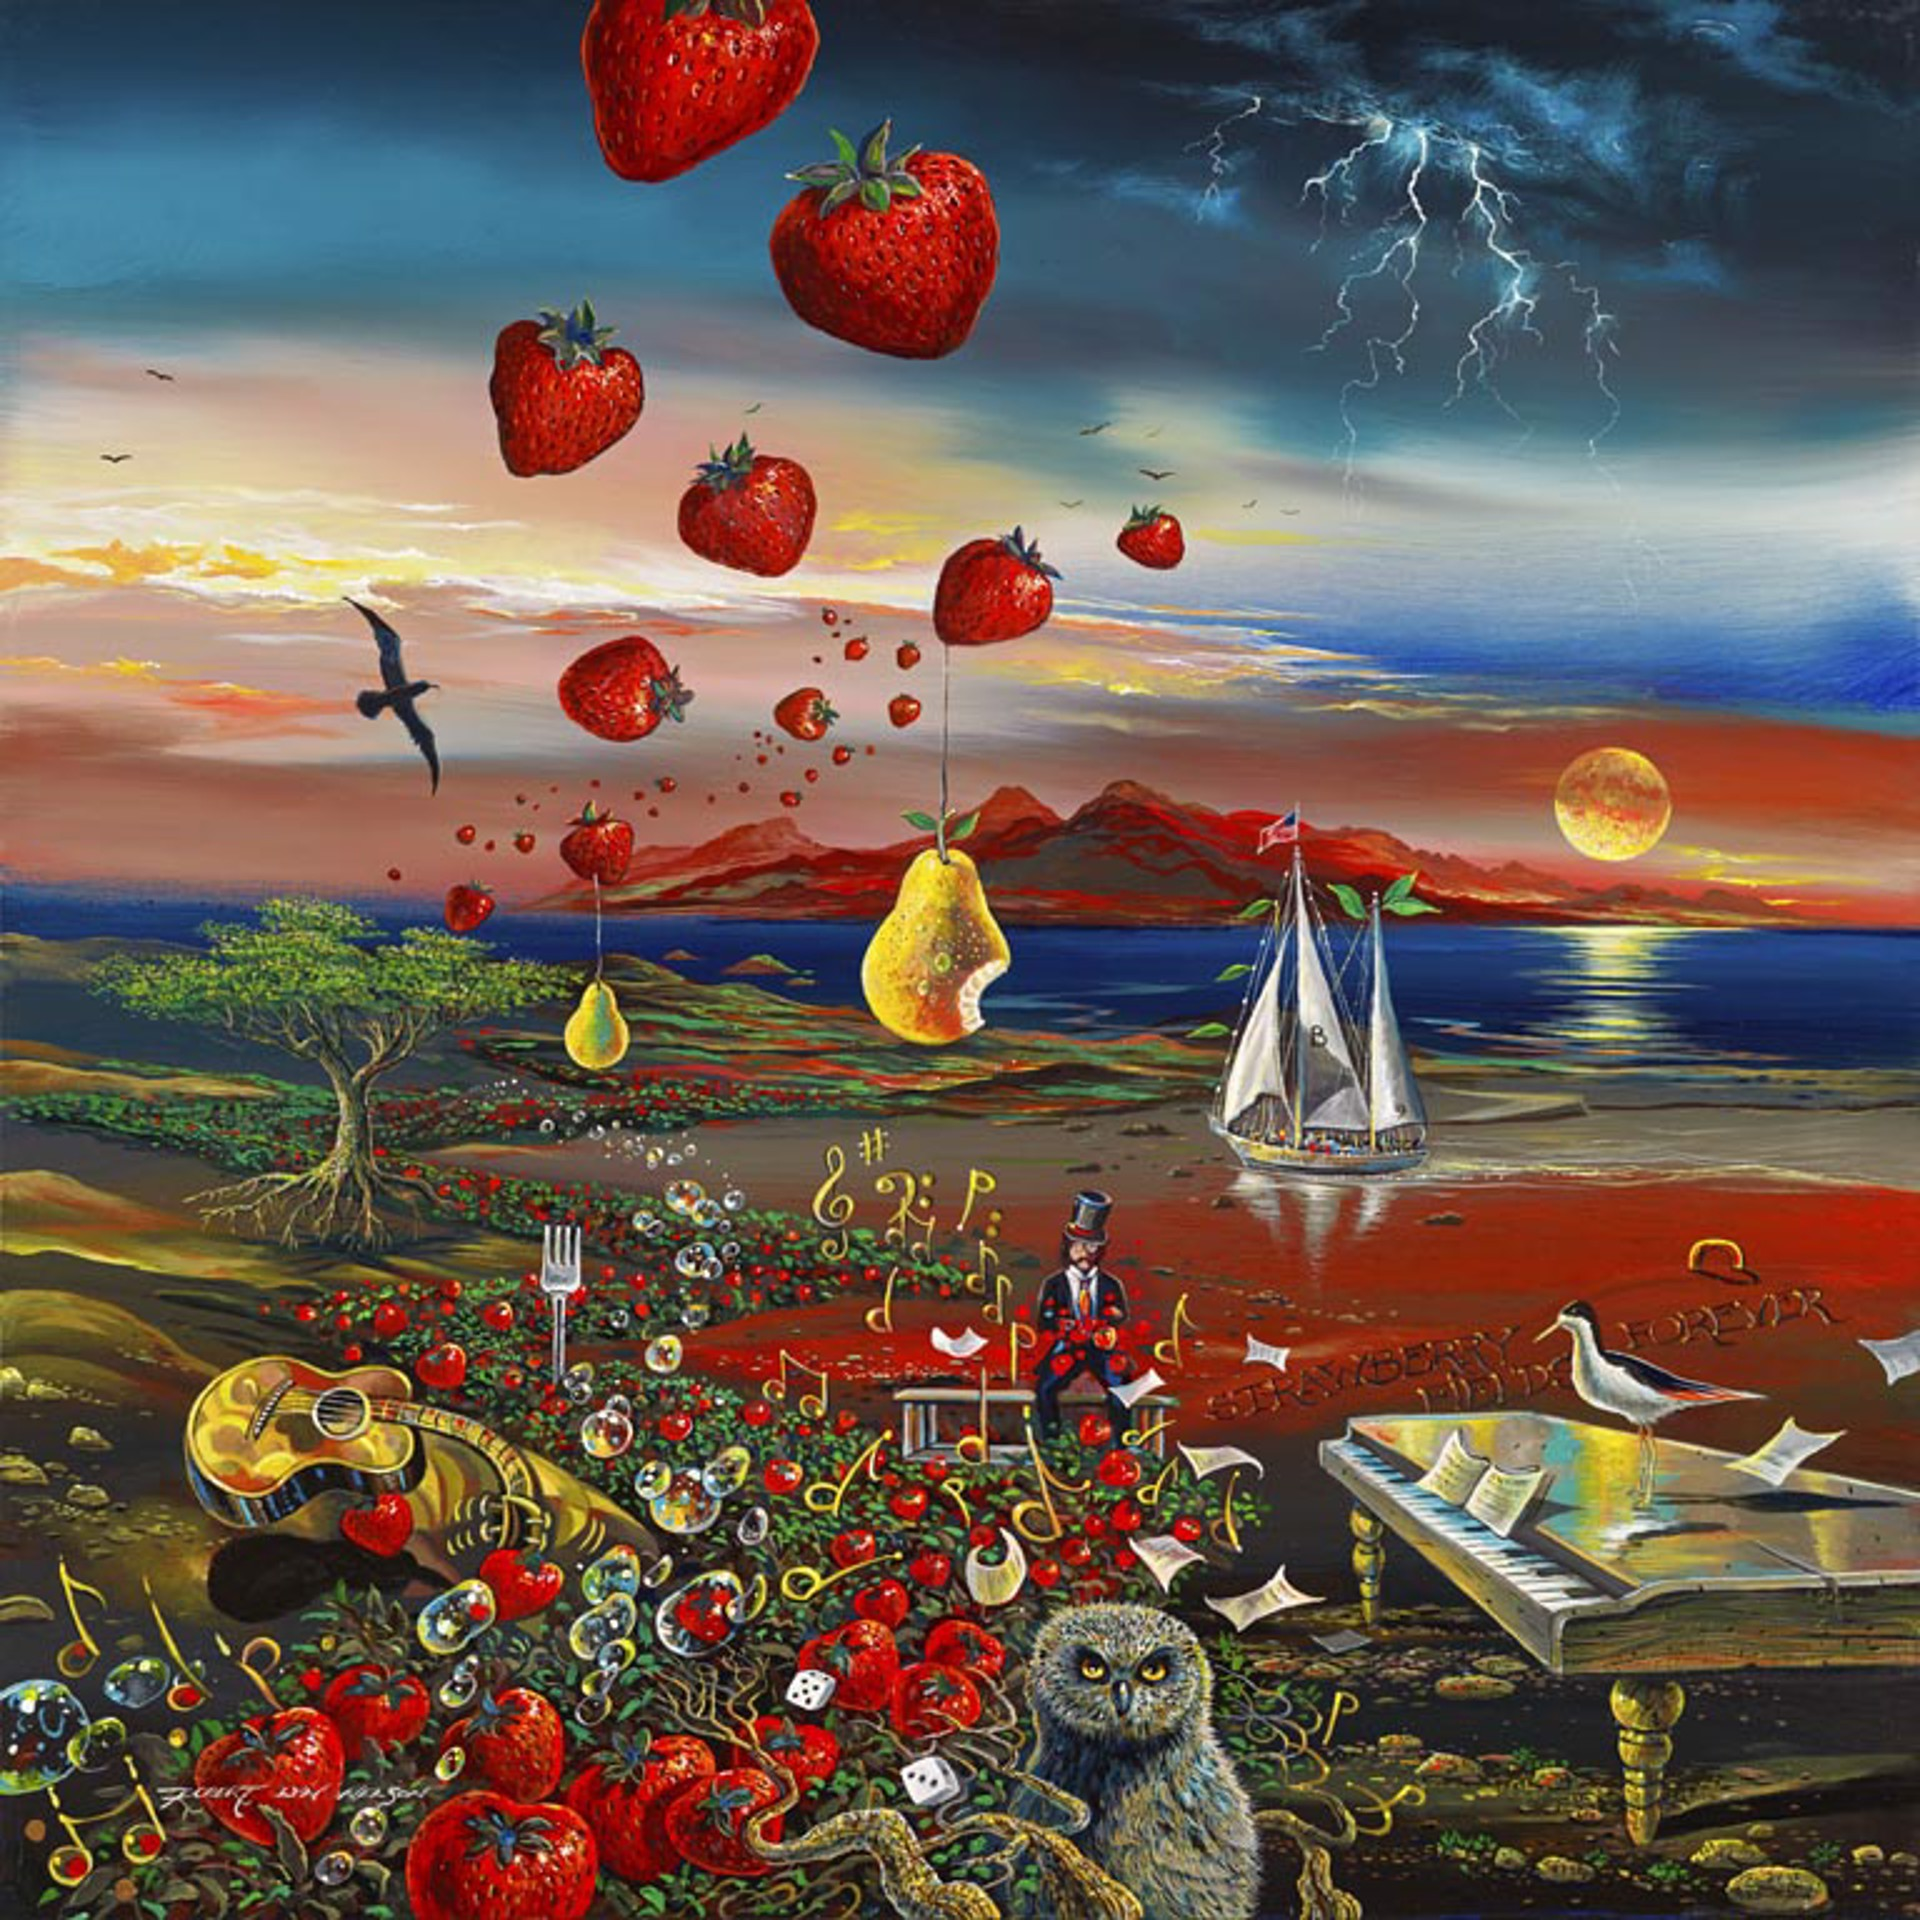 Strawberry Fields Forever by Robert Lyn Nelson